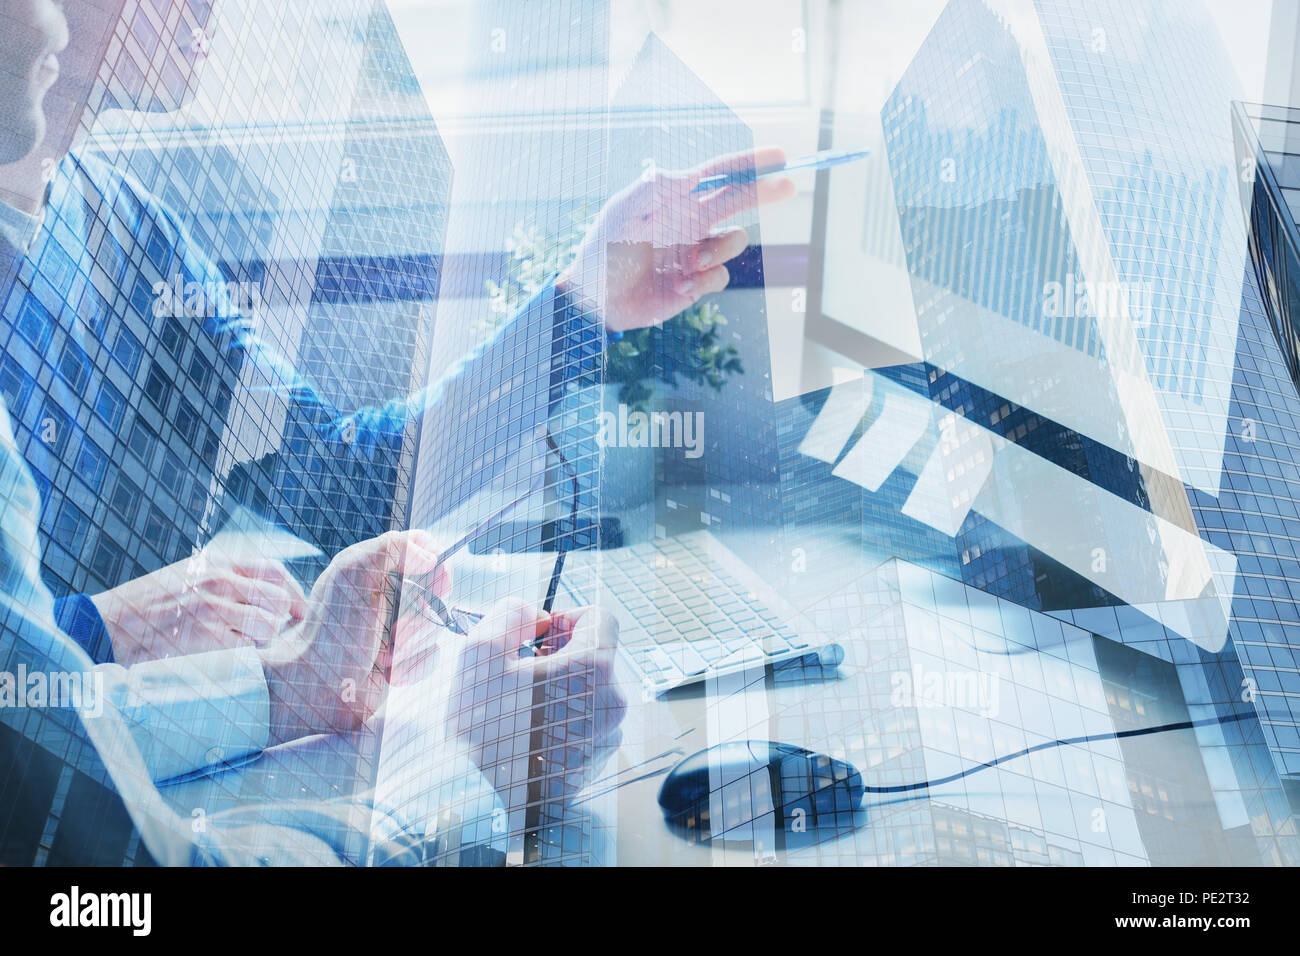 business and innovation technology, brainstorming or collaboration concept, double exposure of team working in modern office - Stock Image